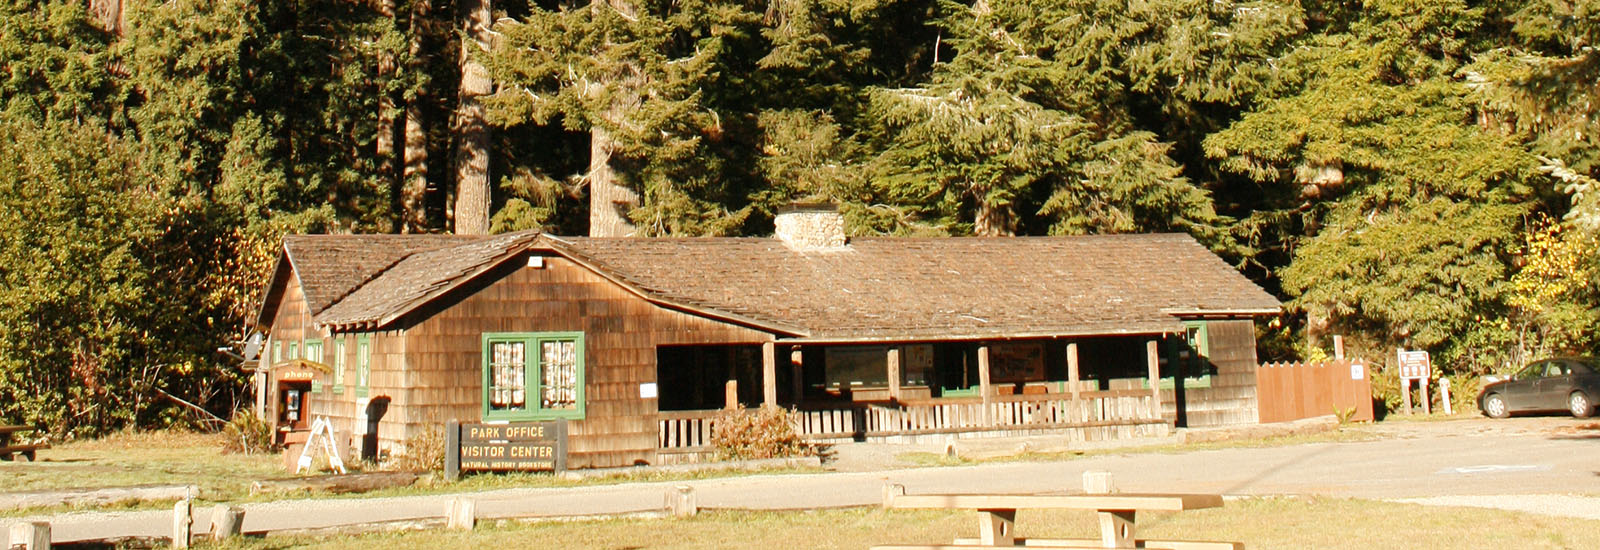 Prairie Creek Redwoods State Park Visitor Center